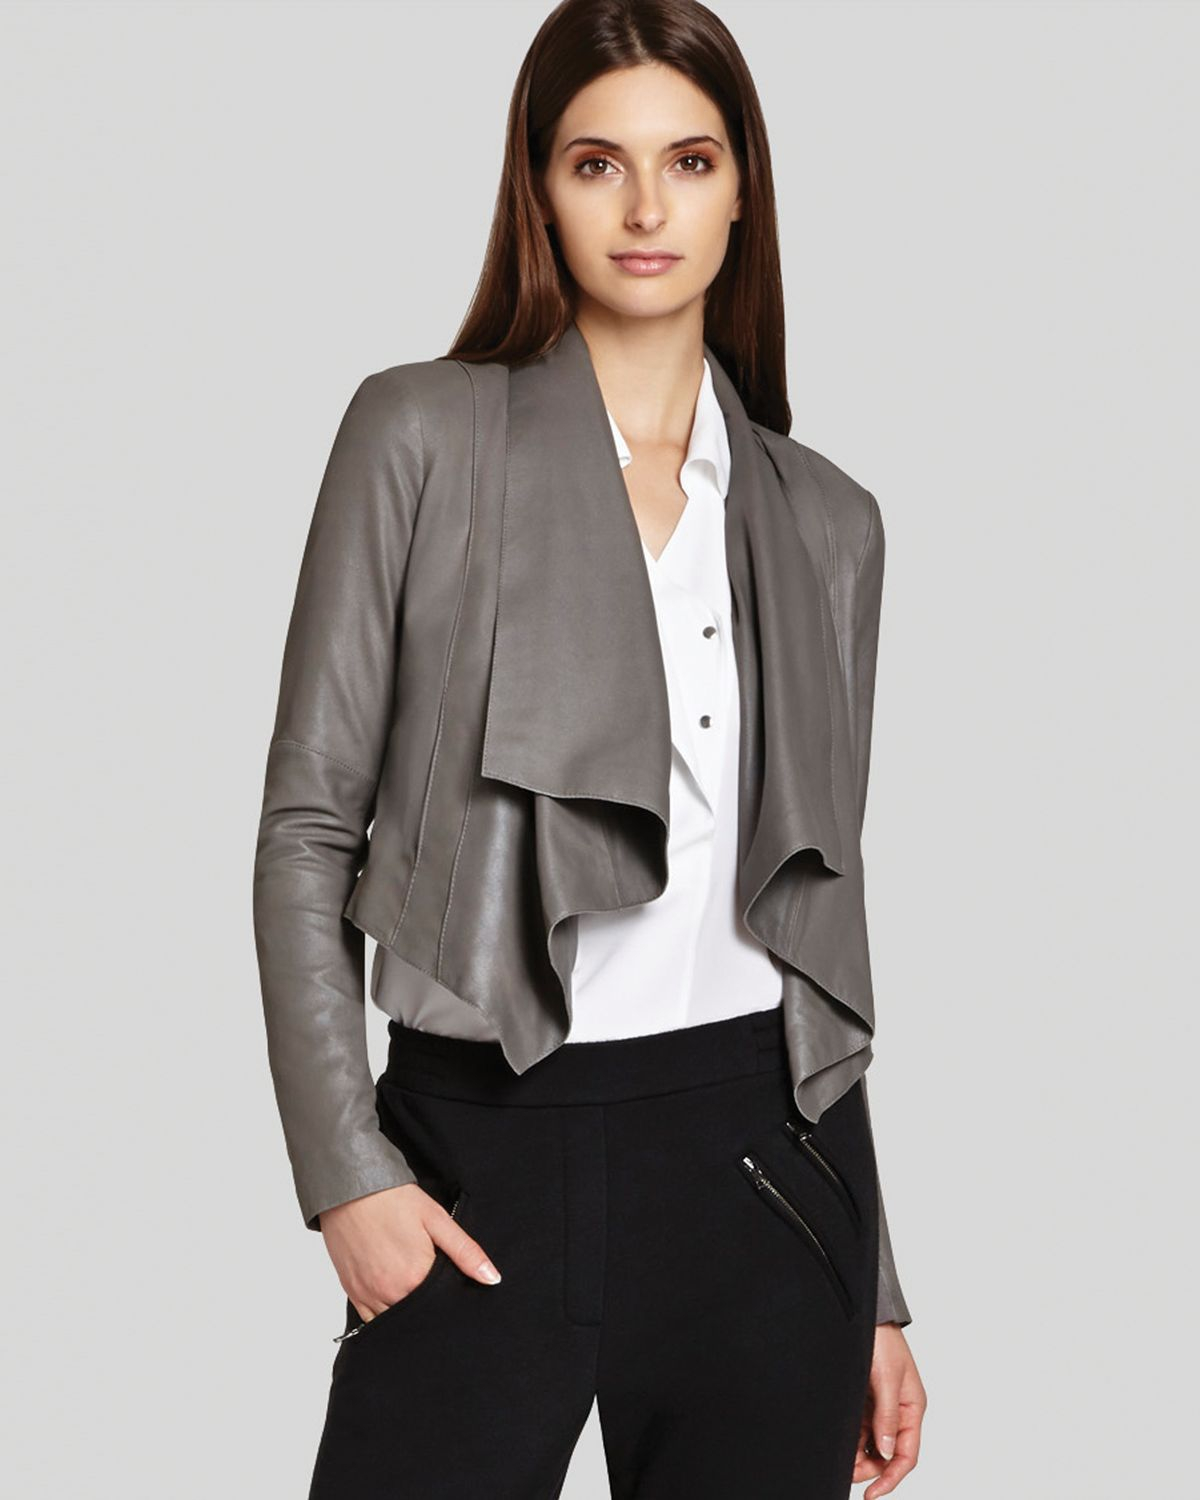 Max /& Lucas Womens Silver Vegan Leather Jacket